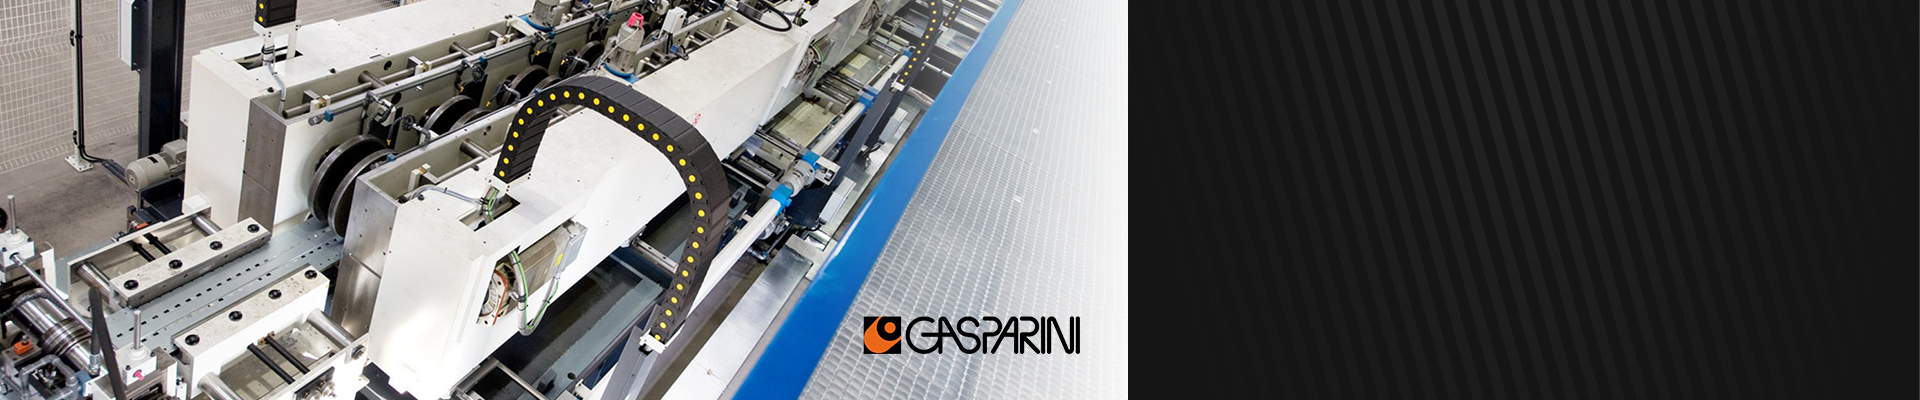 Gasparini, Specialized steel rollforming machinery.